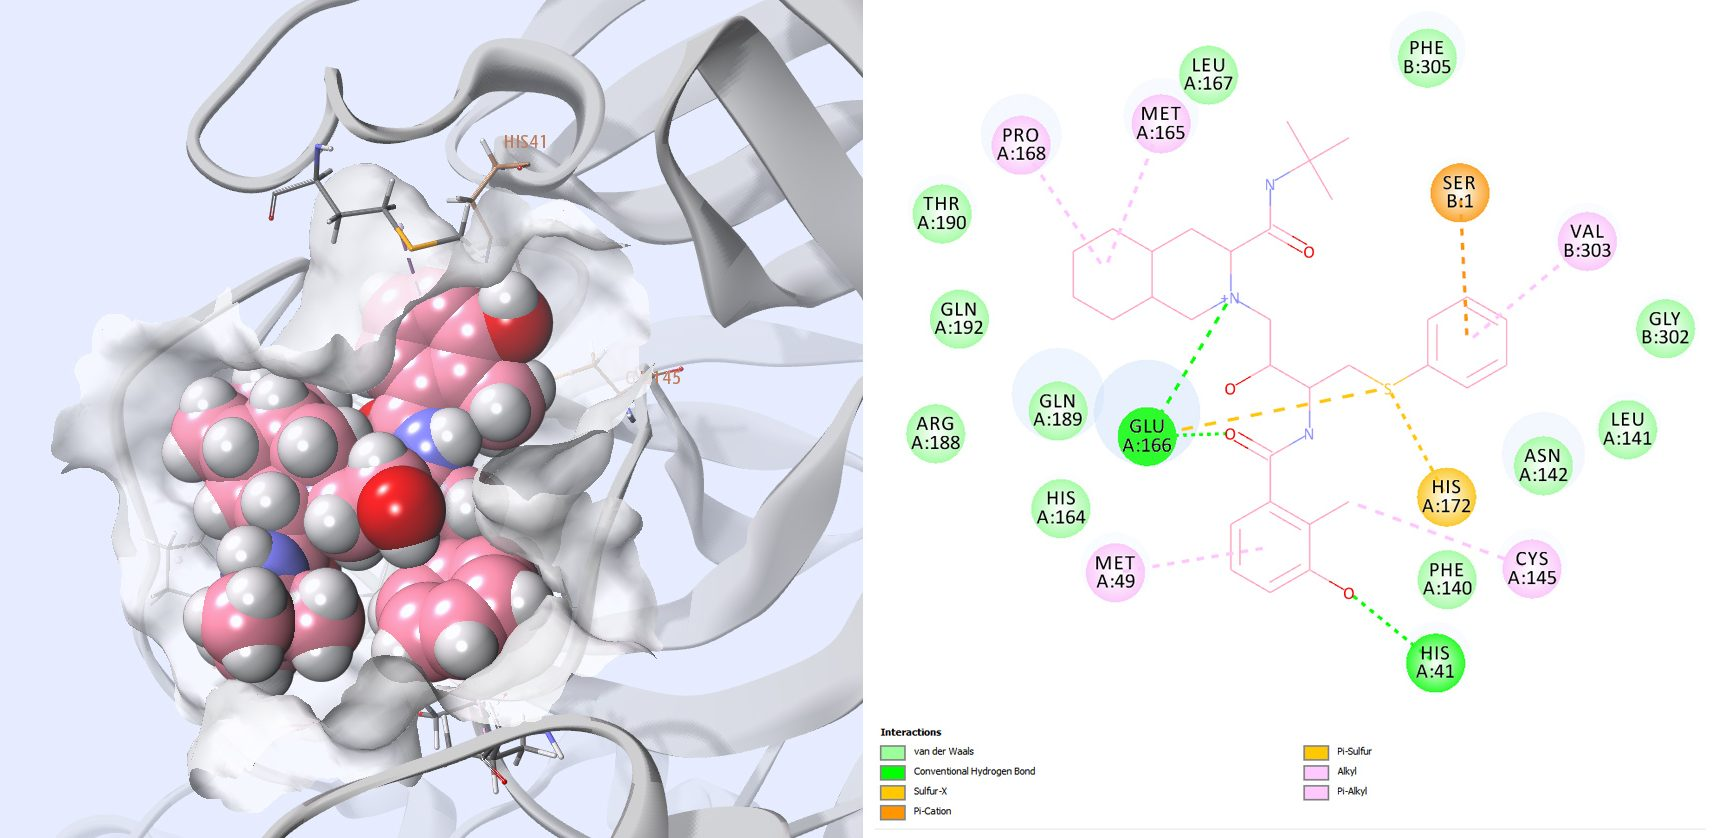 Figure 10: 3D view video and 2D interaction map of Nelfinavir with SARS-CoV-2 protease